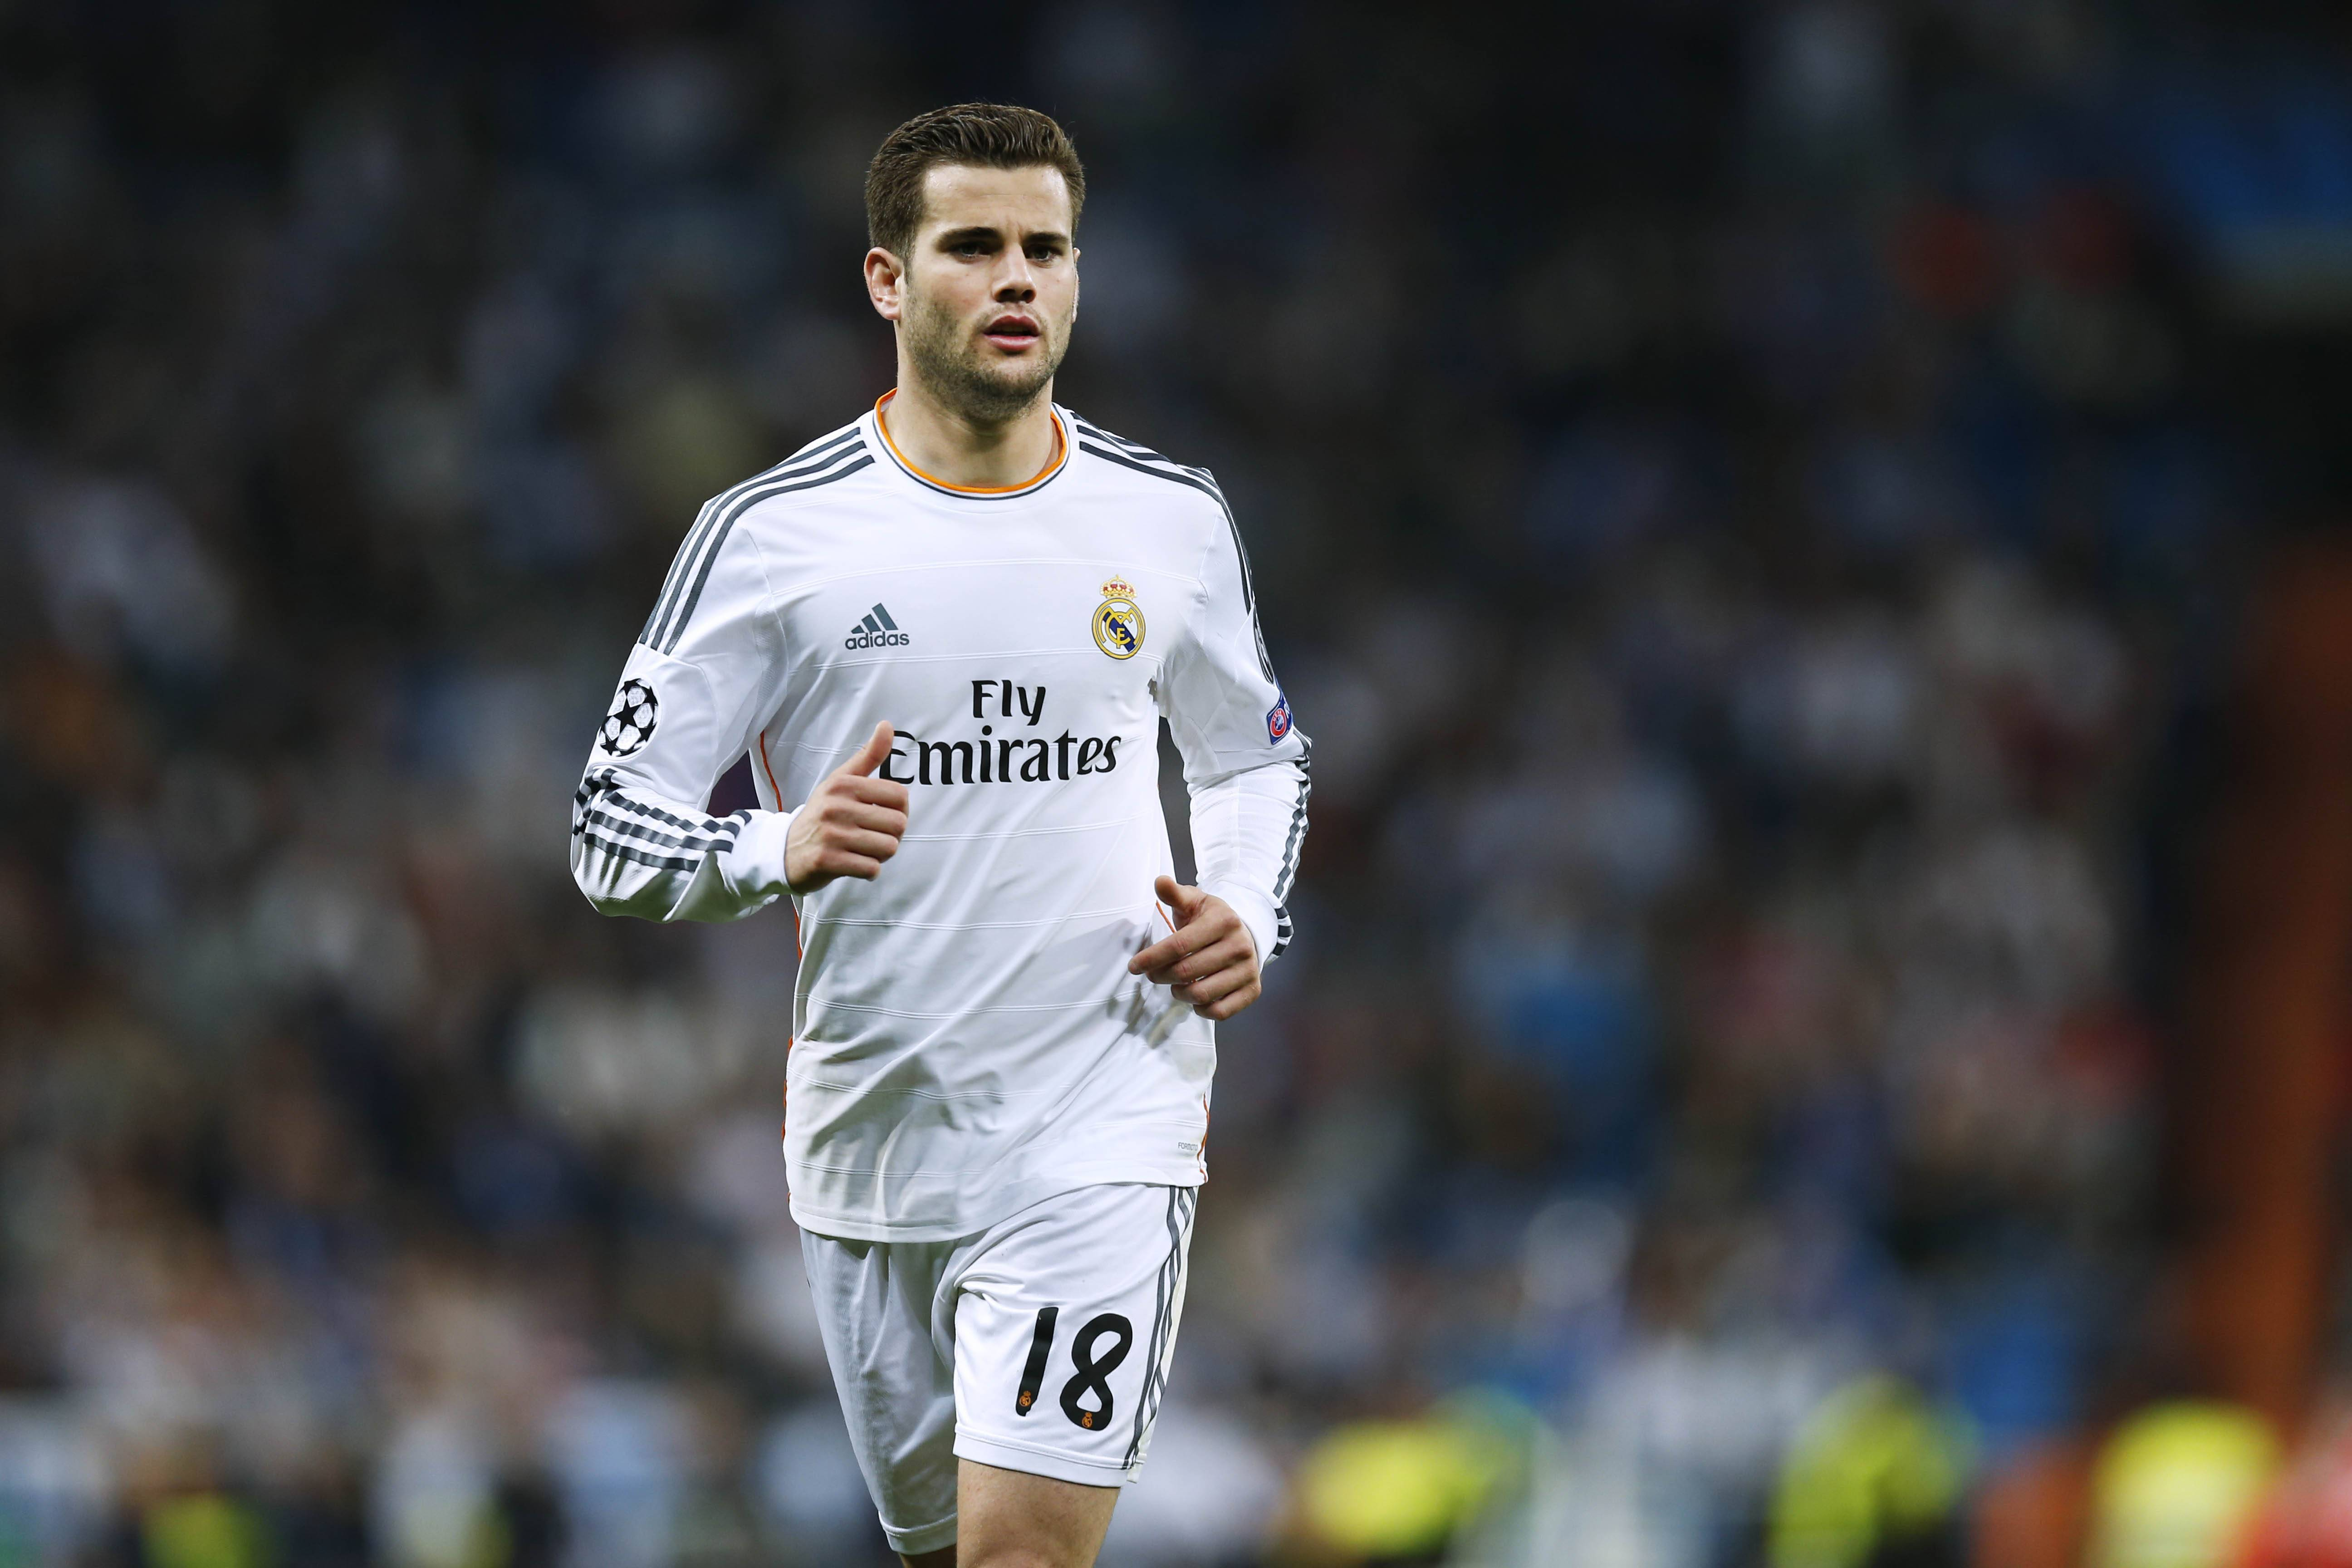 Nacho Real MARCH 18 2014 Football Soccer UEFA Champions League Round of 16 2nd leg match